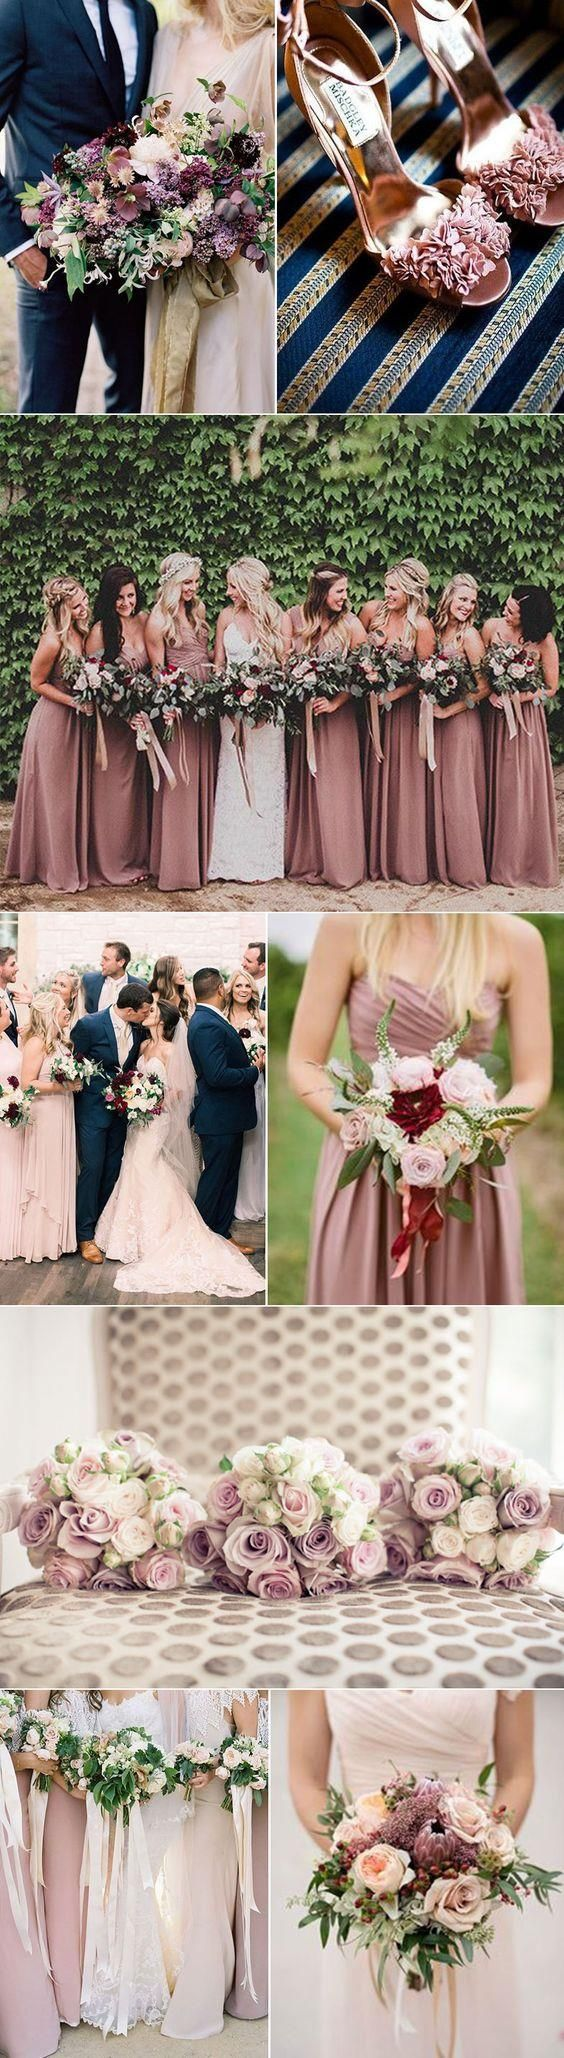 We love the look of mauve and navy together! This would be a great combo for spring, summer or fall! #weddingideawednesday #duboisfw